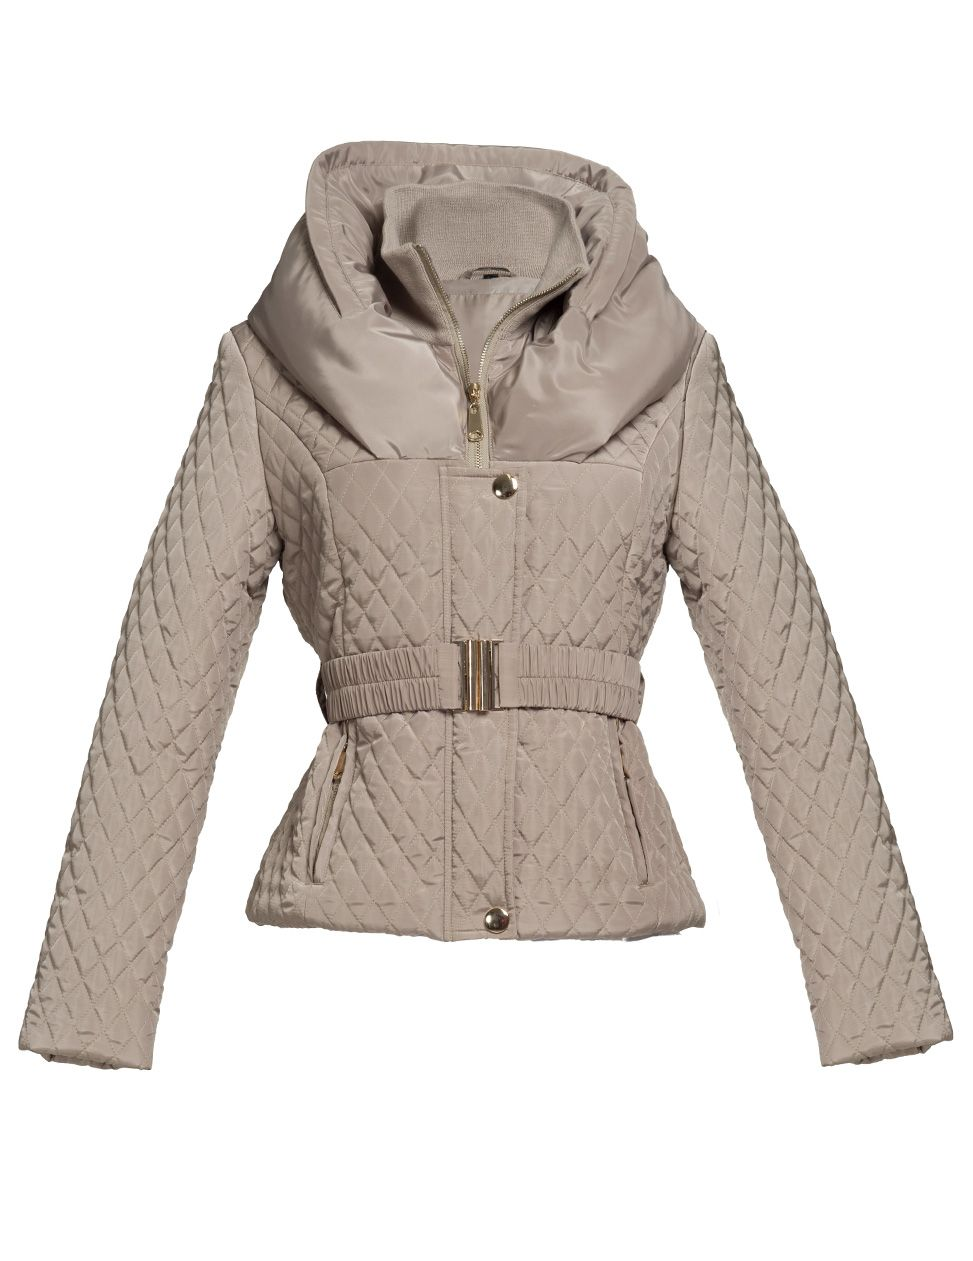 Hart beige hooded jacket